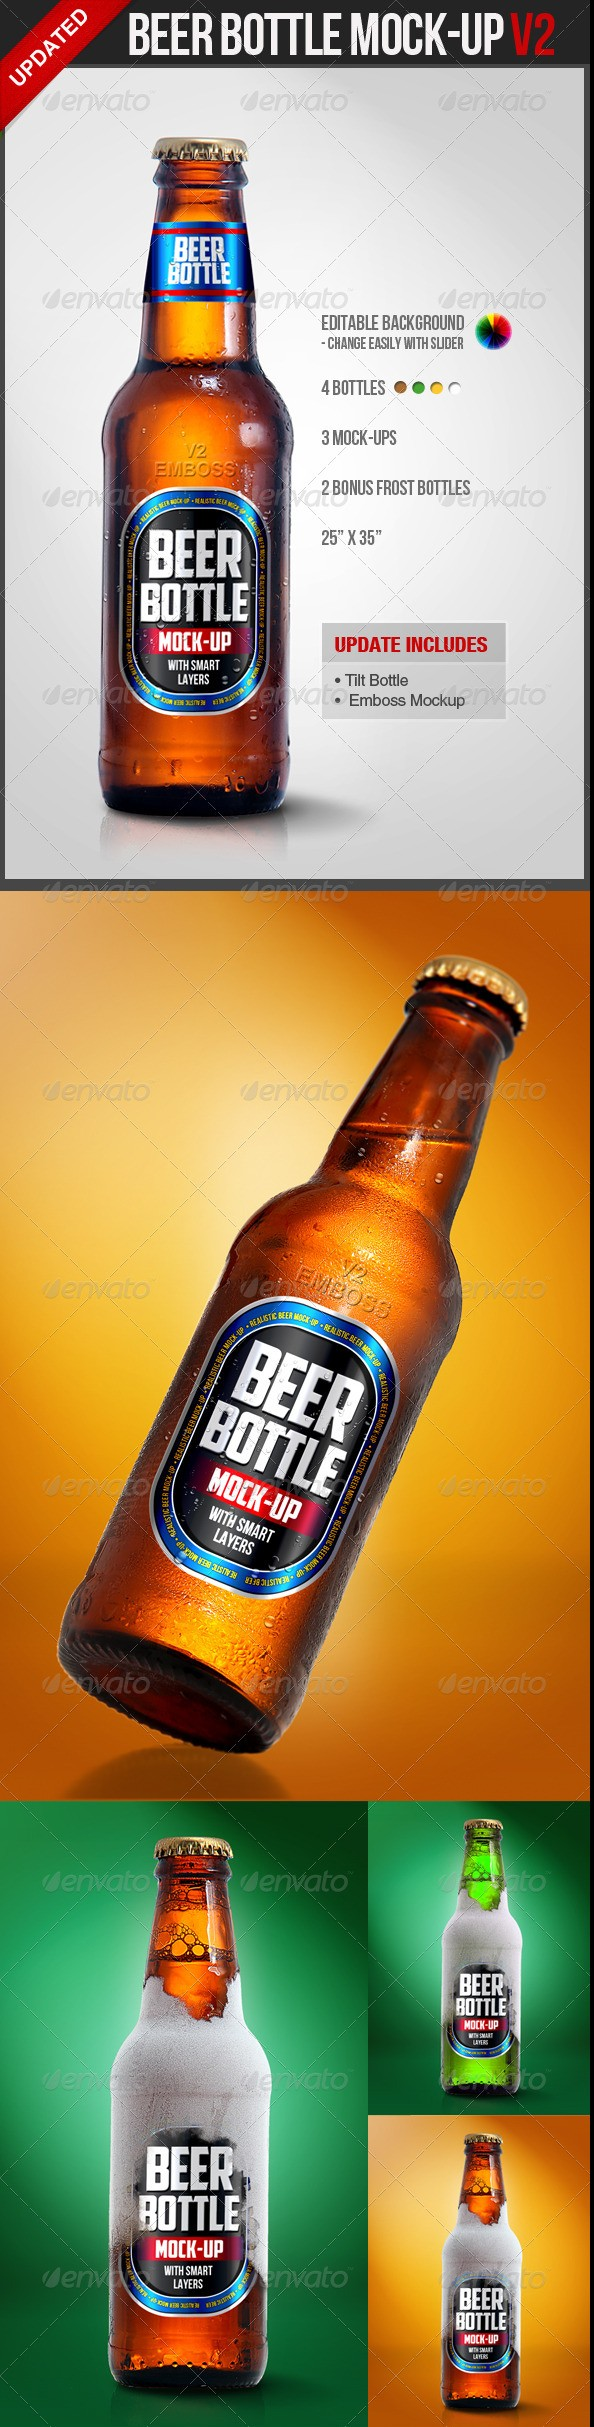 Beer Bottle Mockup V2